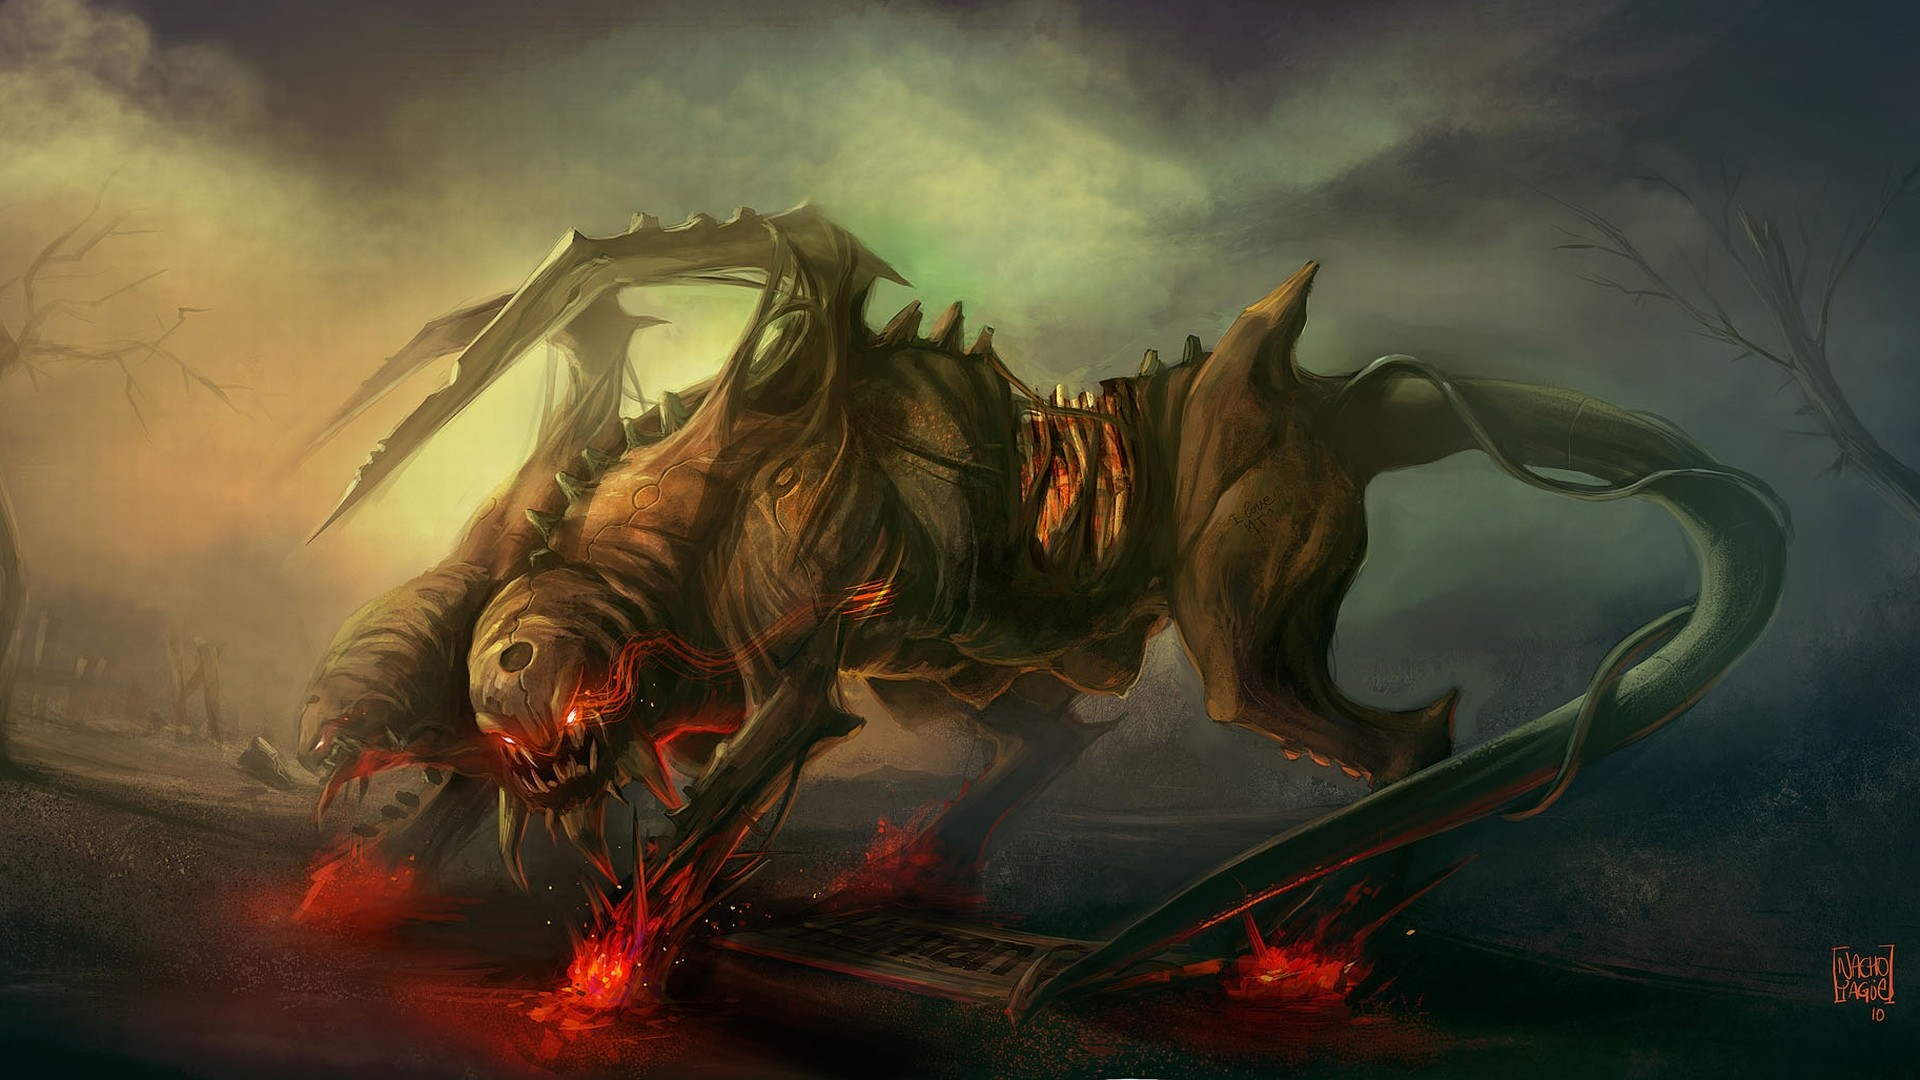 Fantasy creatures artwork jpg freeuse library 17 Best images about Mystical Creatures/Monsters on Pinterest ... jpg freeuse library